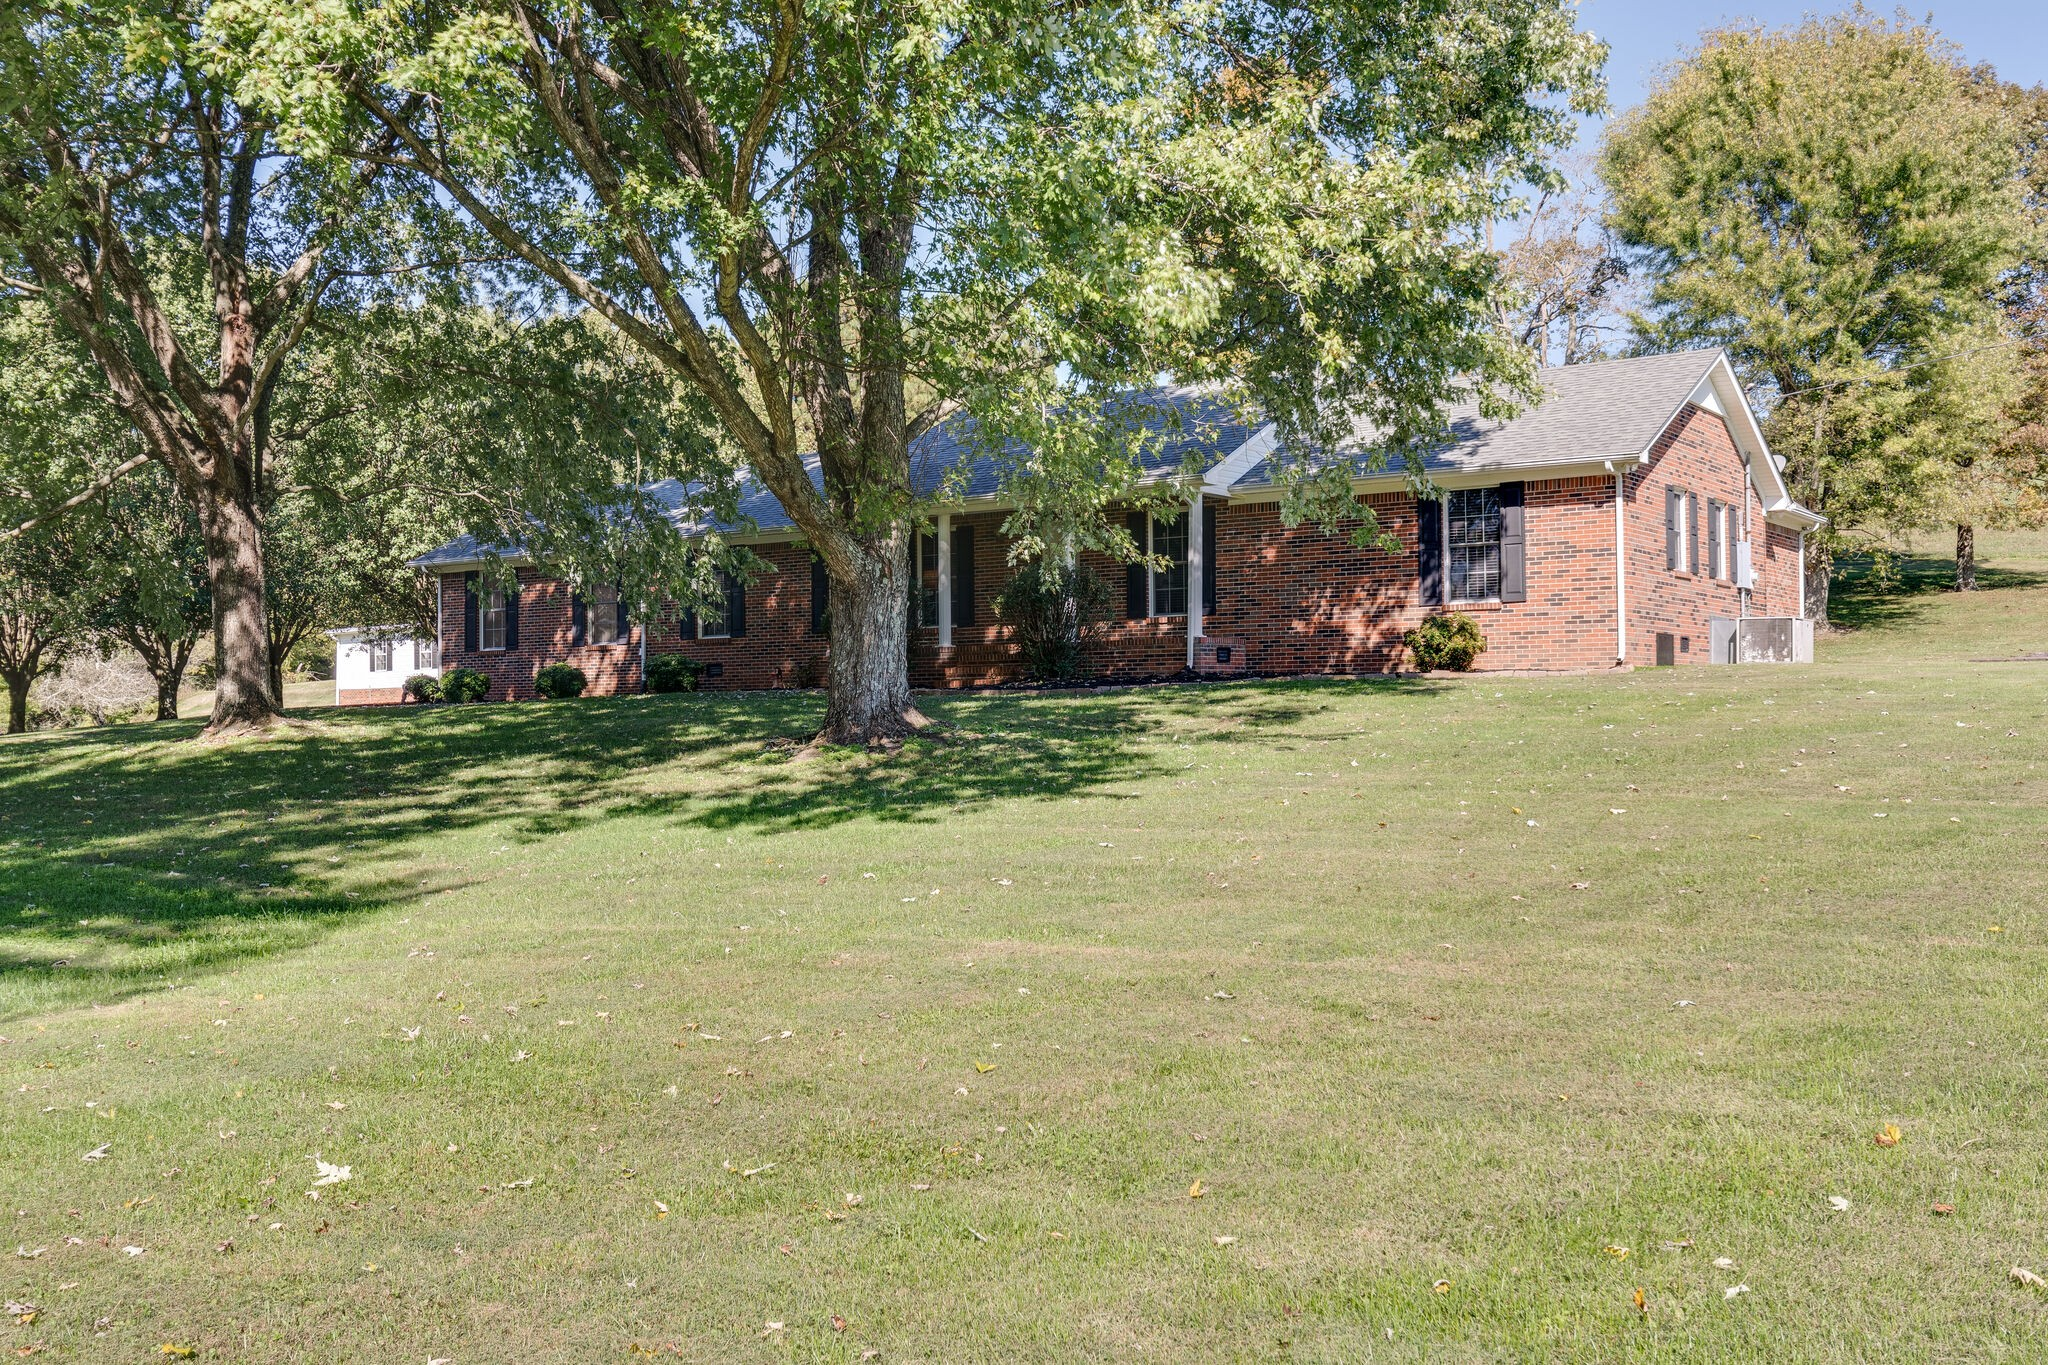 4109 Scott Hollow Rd Property Photo - Culleoka, TN real estate listing